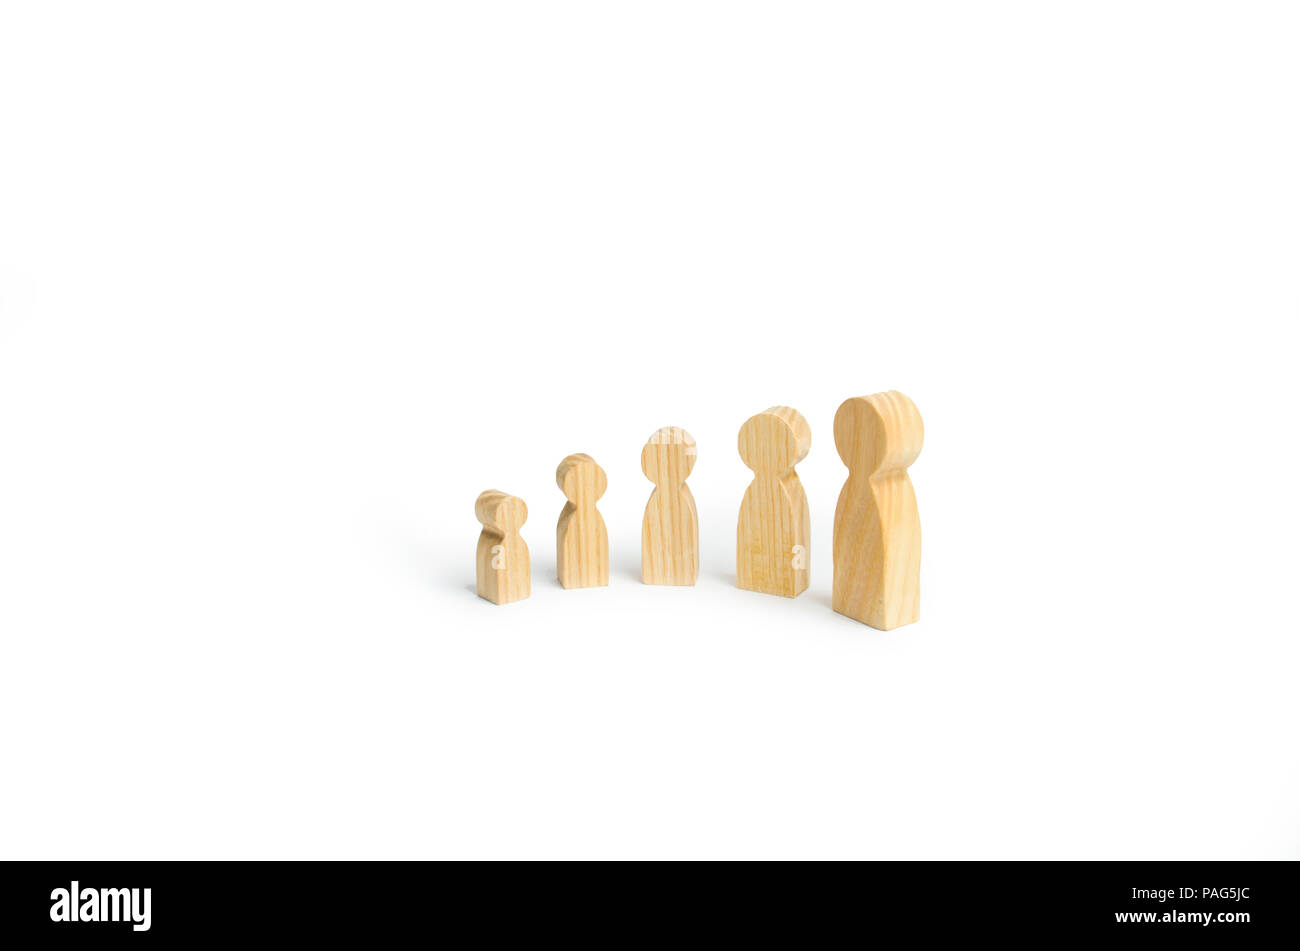 Wooden Figures Of People From Small To Large Stand In A Semicircle